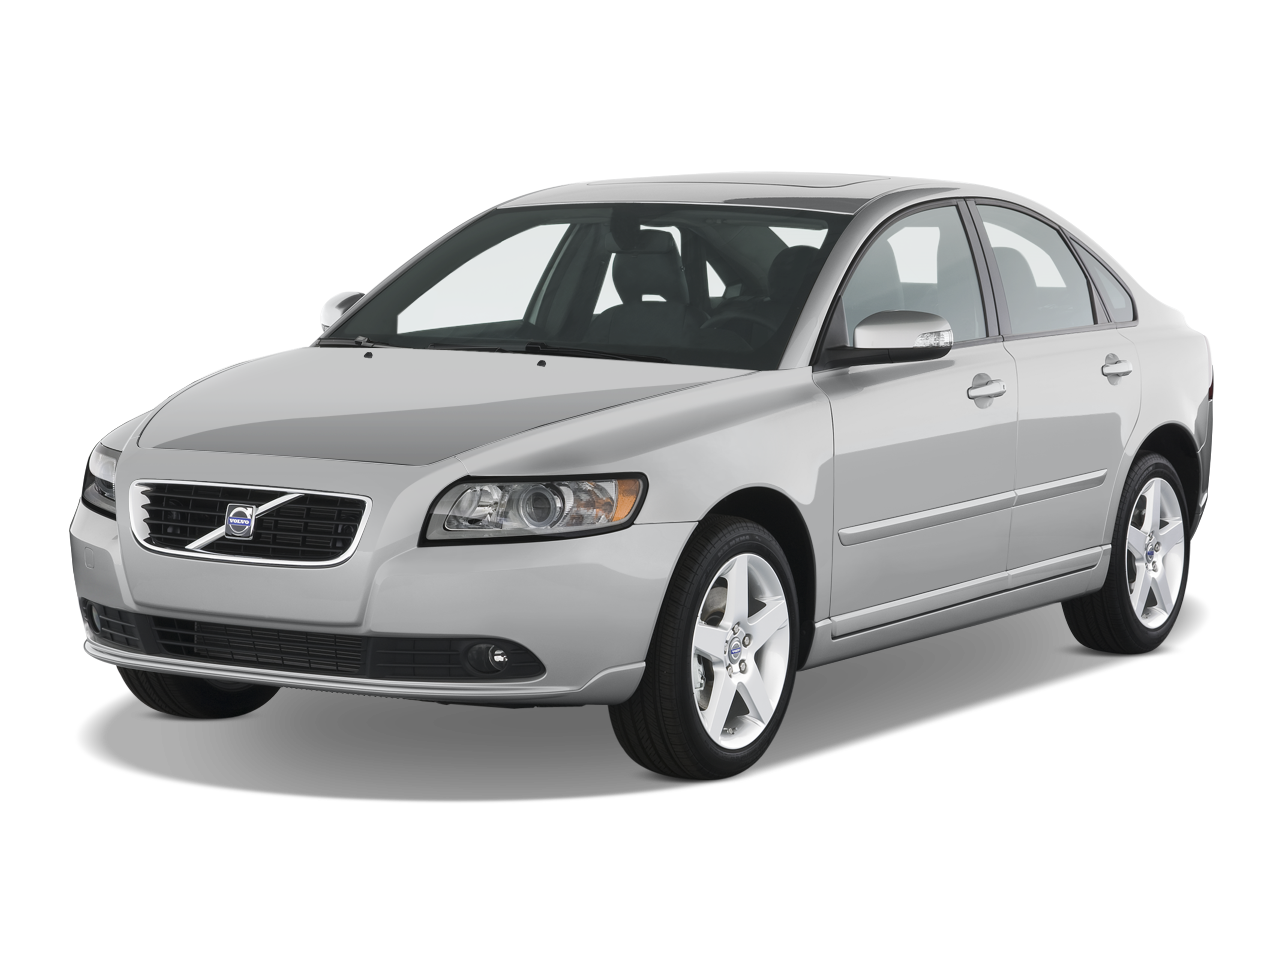 2008 Volvo S40 Sedan And V50 Wagon Latest News Auto